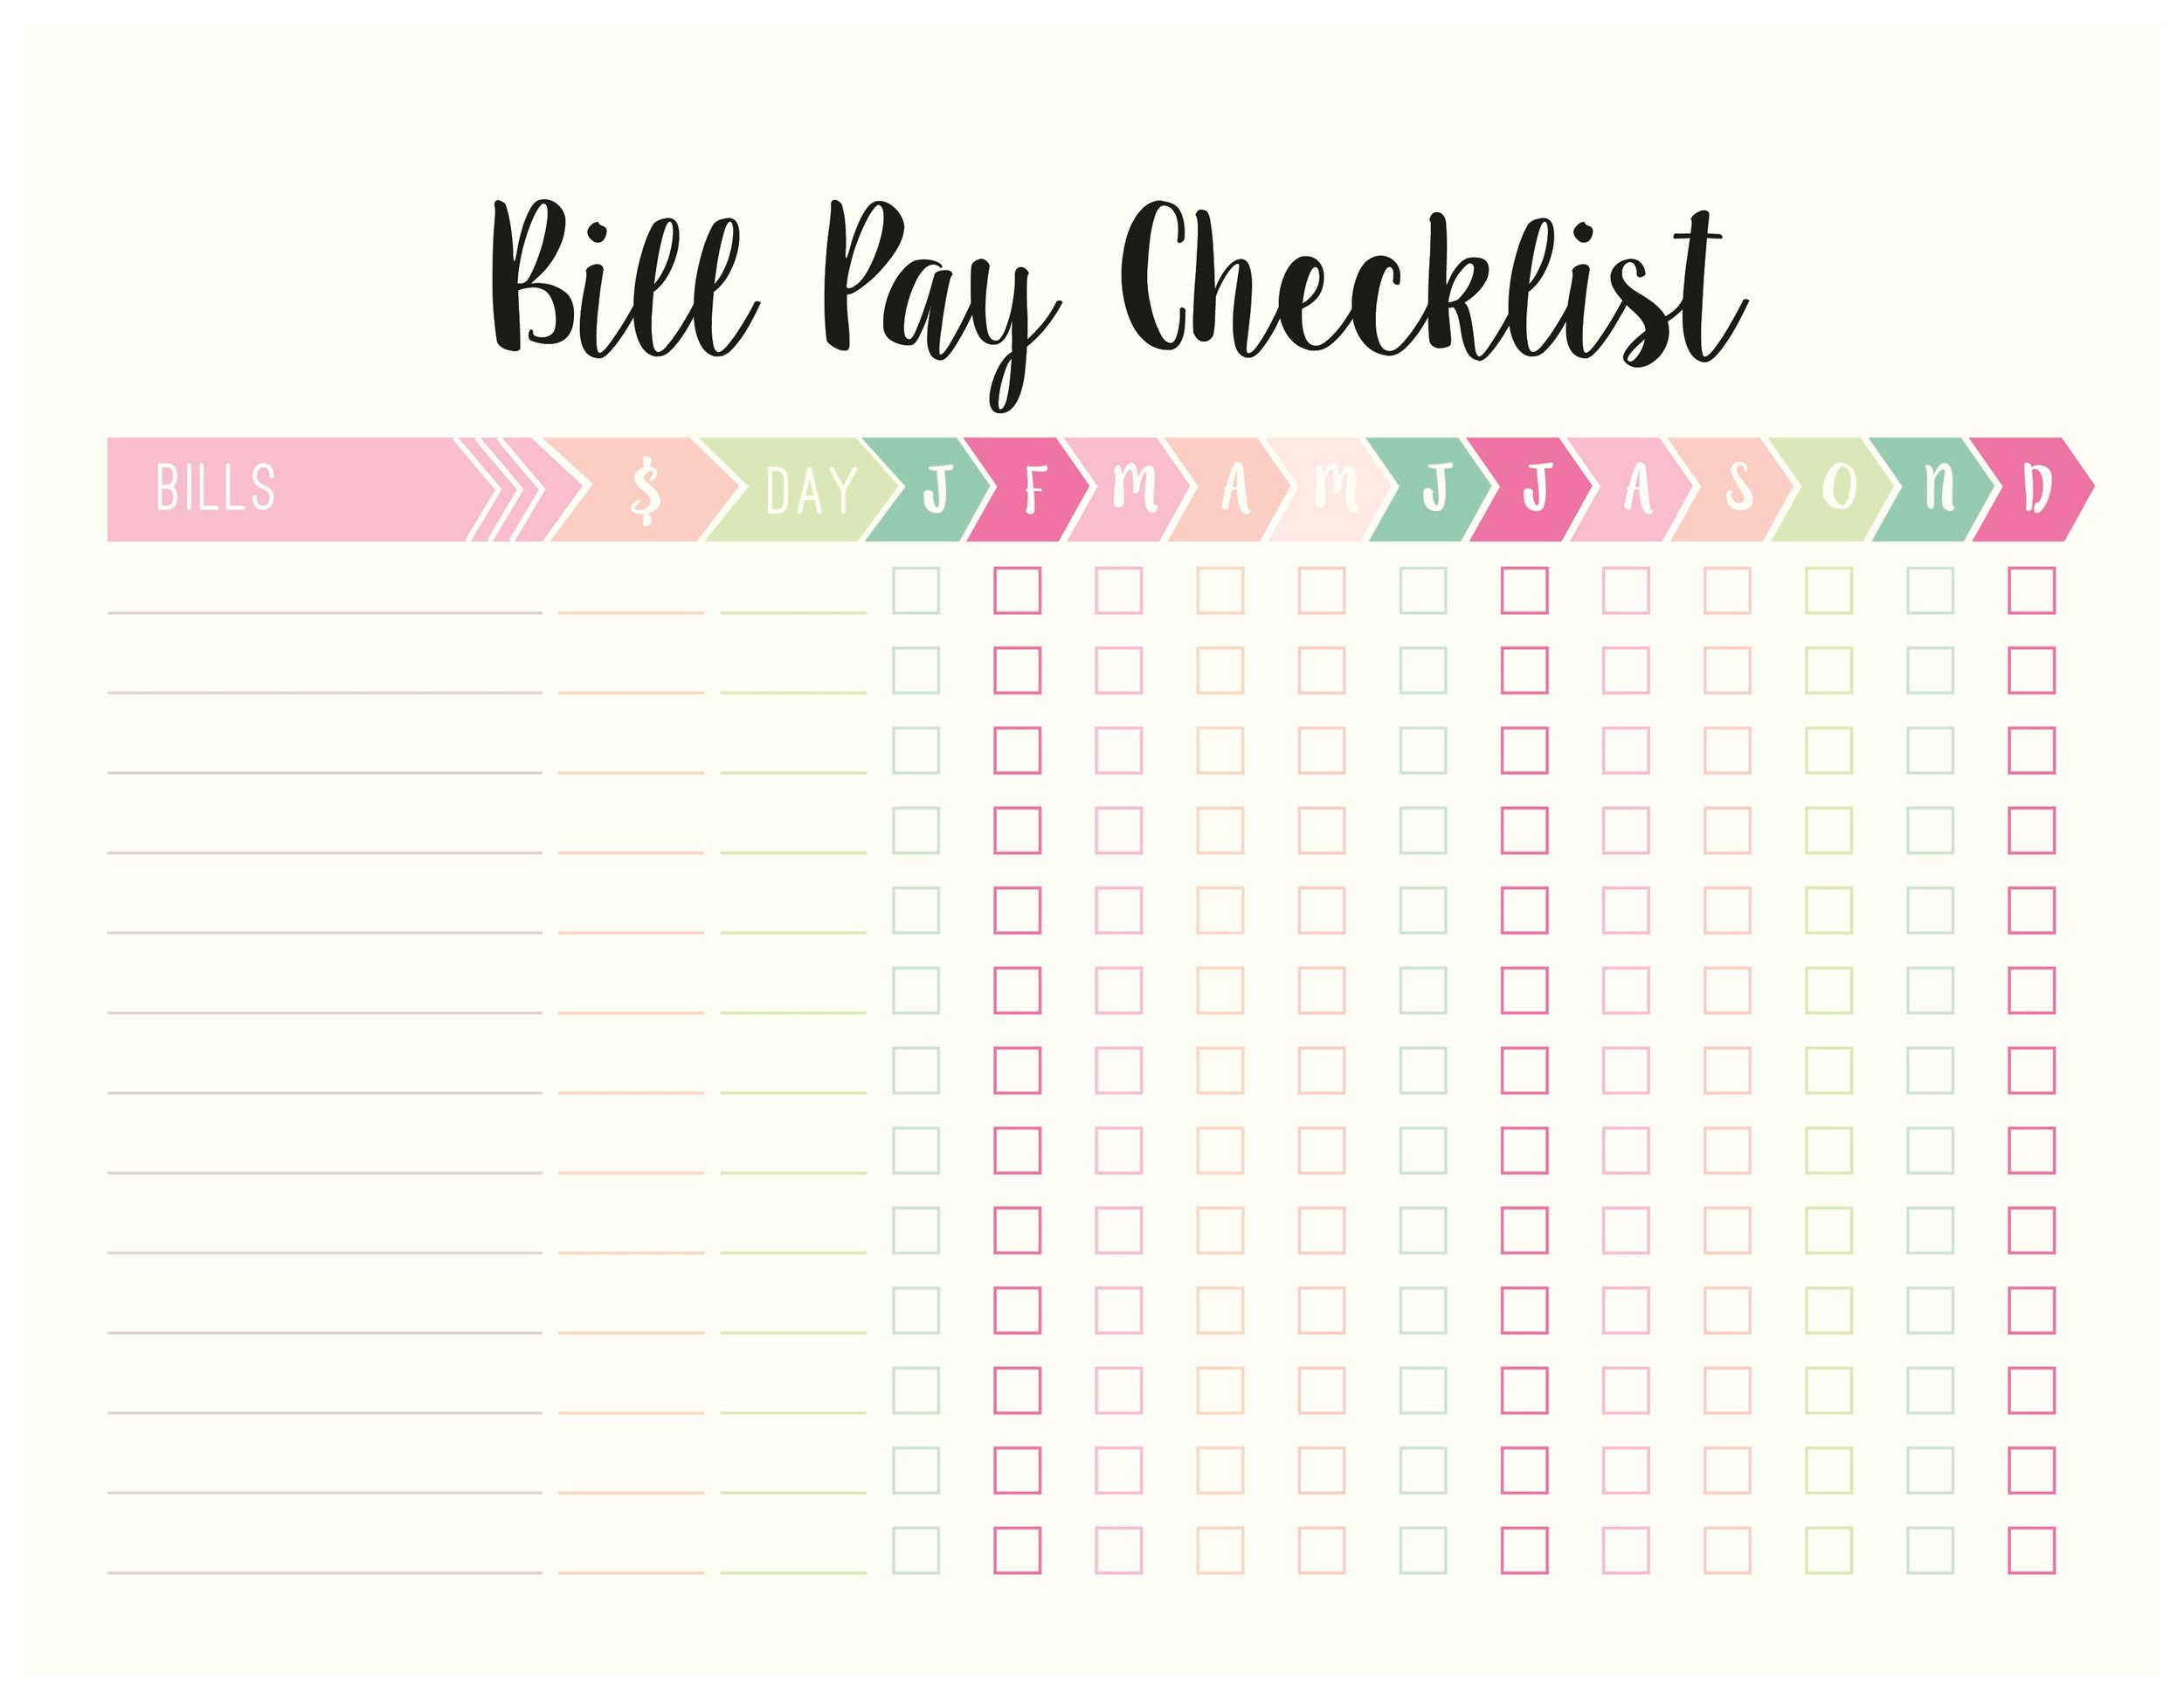 Free bill pay checklist template 23